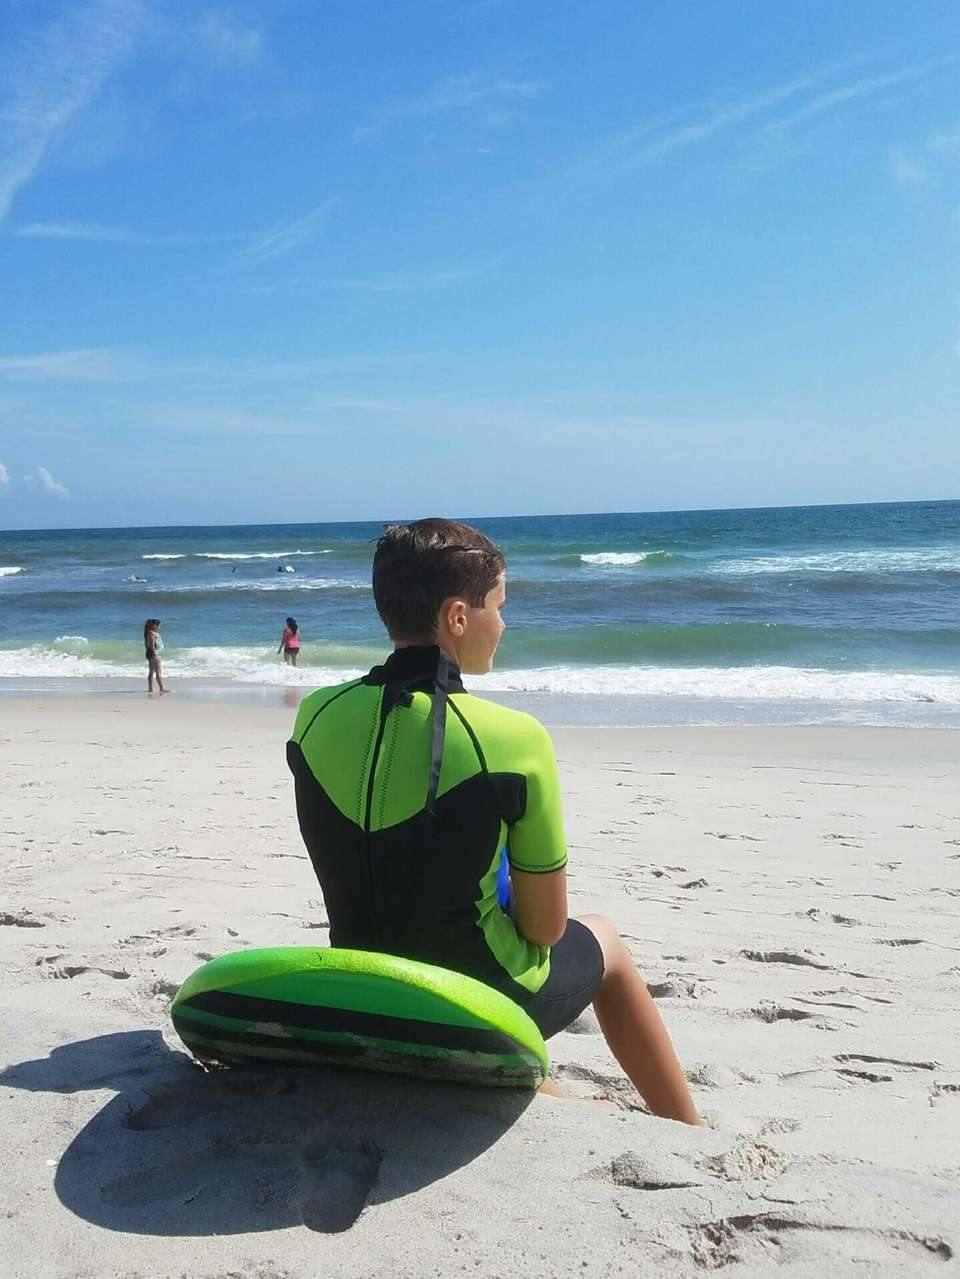 Peter Fiscina, 14 , Checking out the waves